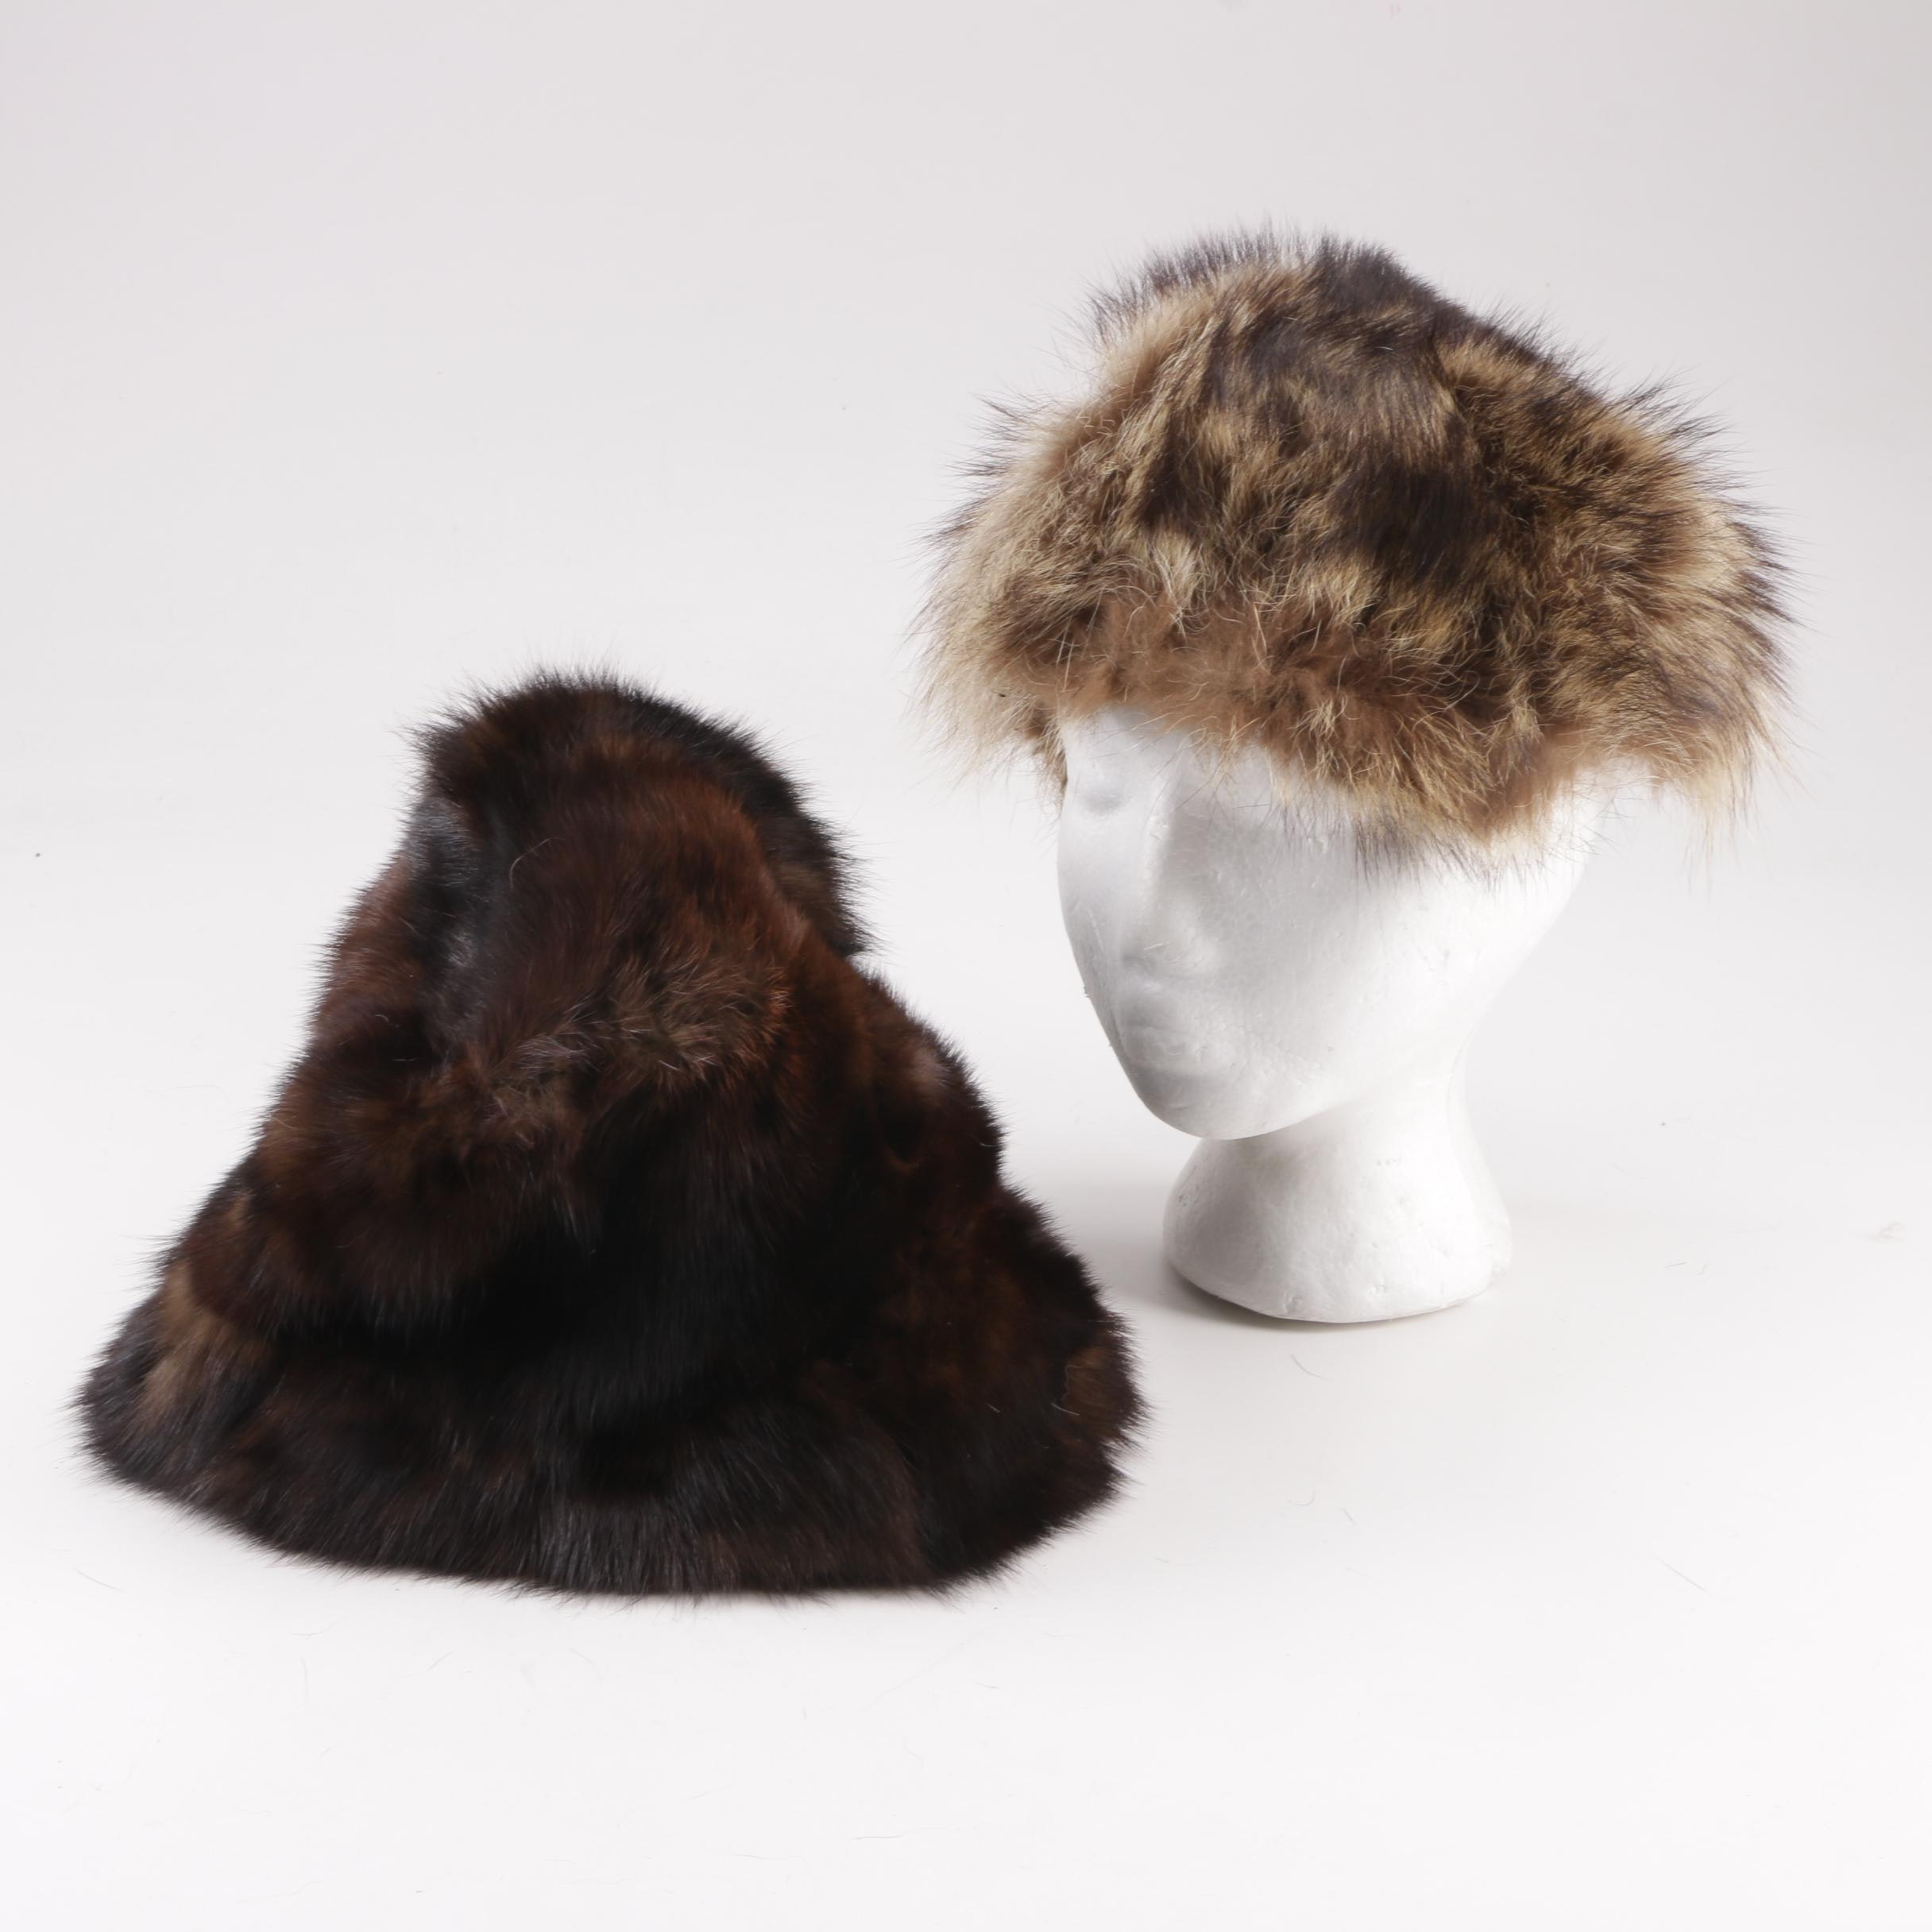 Vintage Dyed Rabbit Fur Hat and Ronna Lewis for Bonwit Teller Raccoon Fur Hat